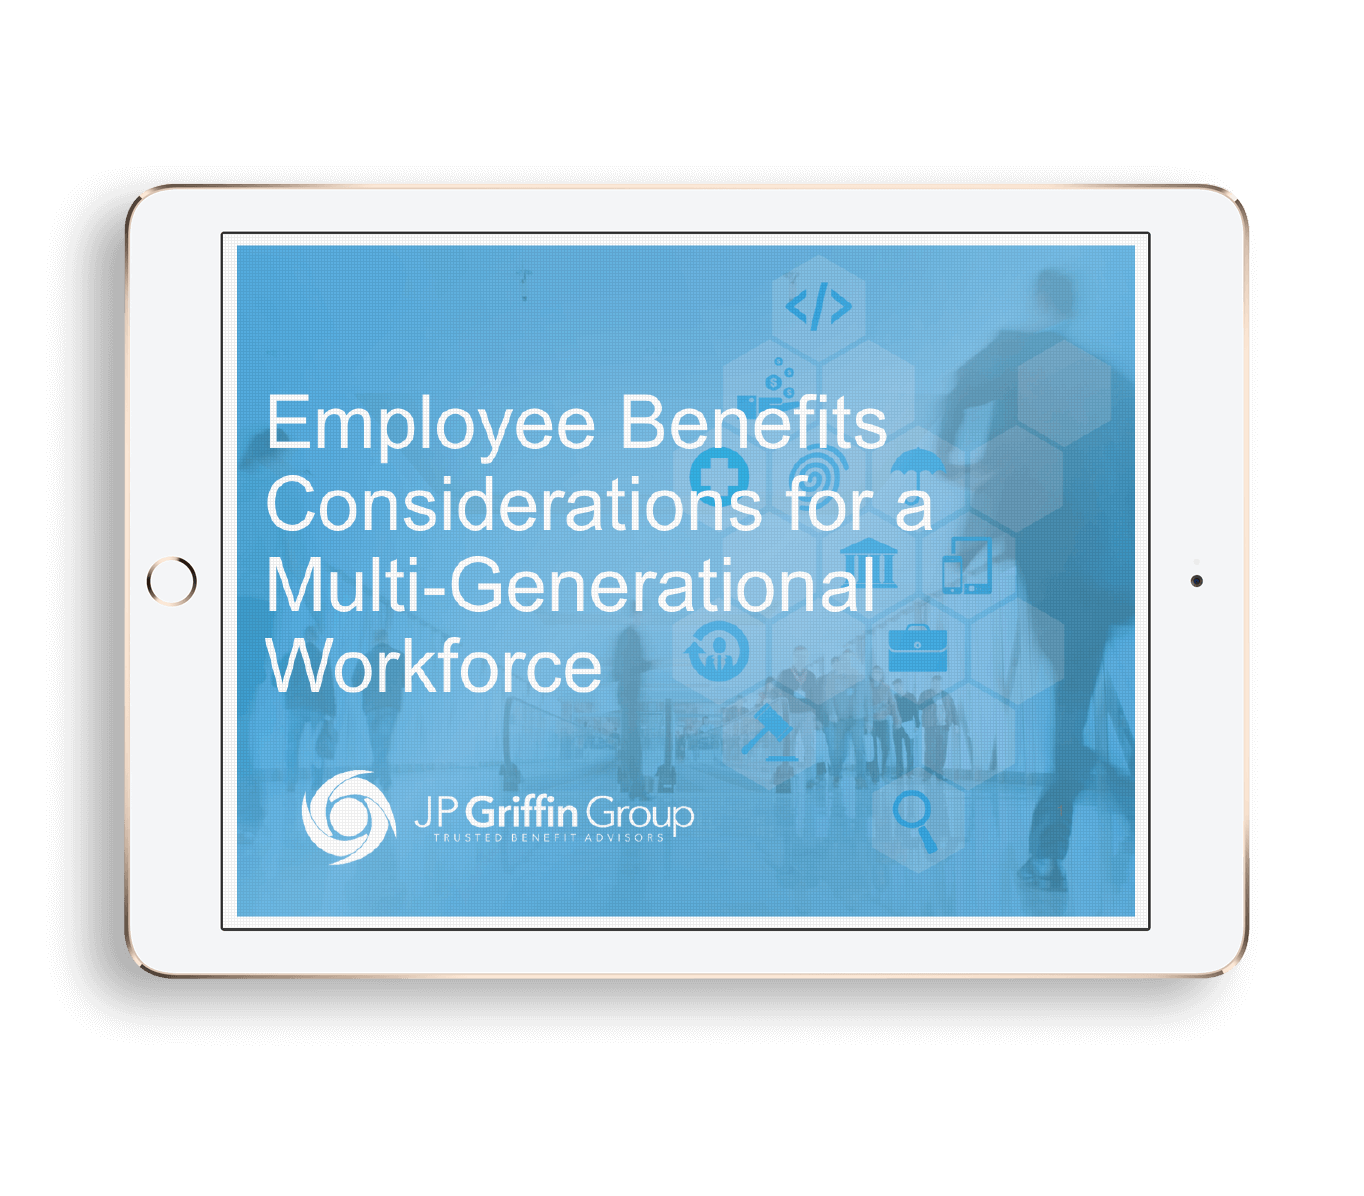 Employee Benefits Considerations for a multigenerational workforce[1] copy